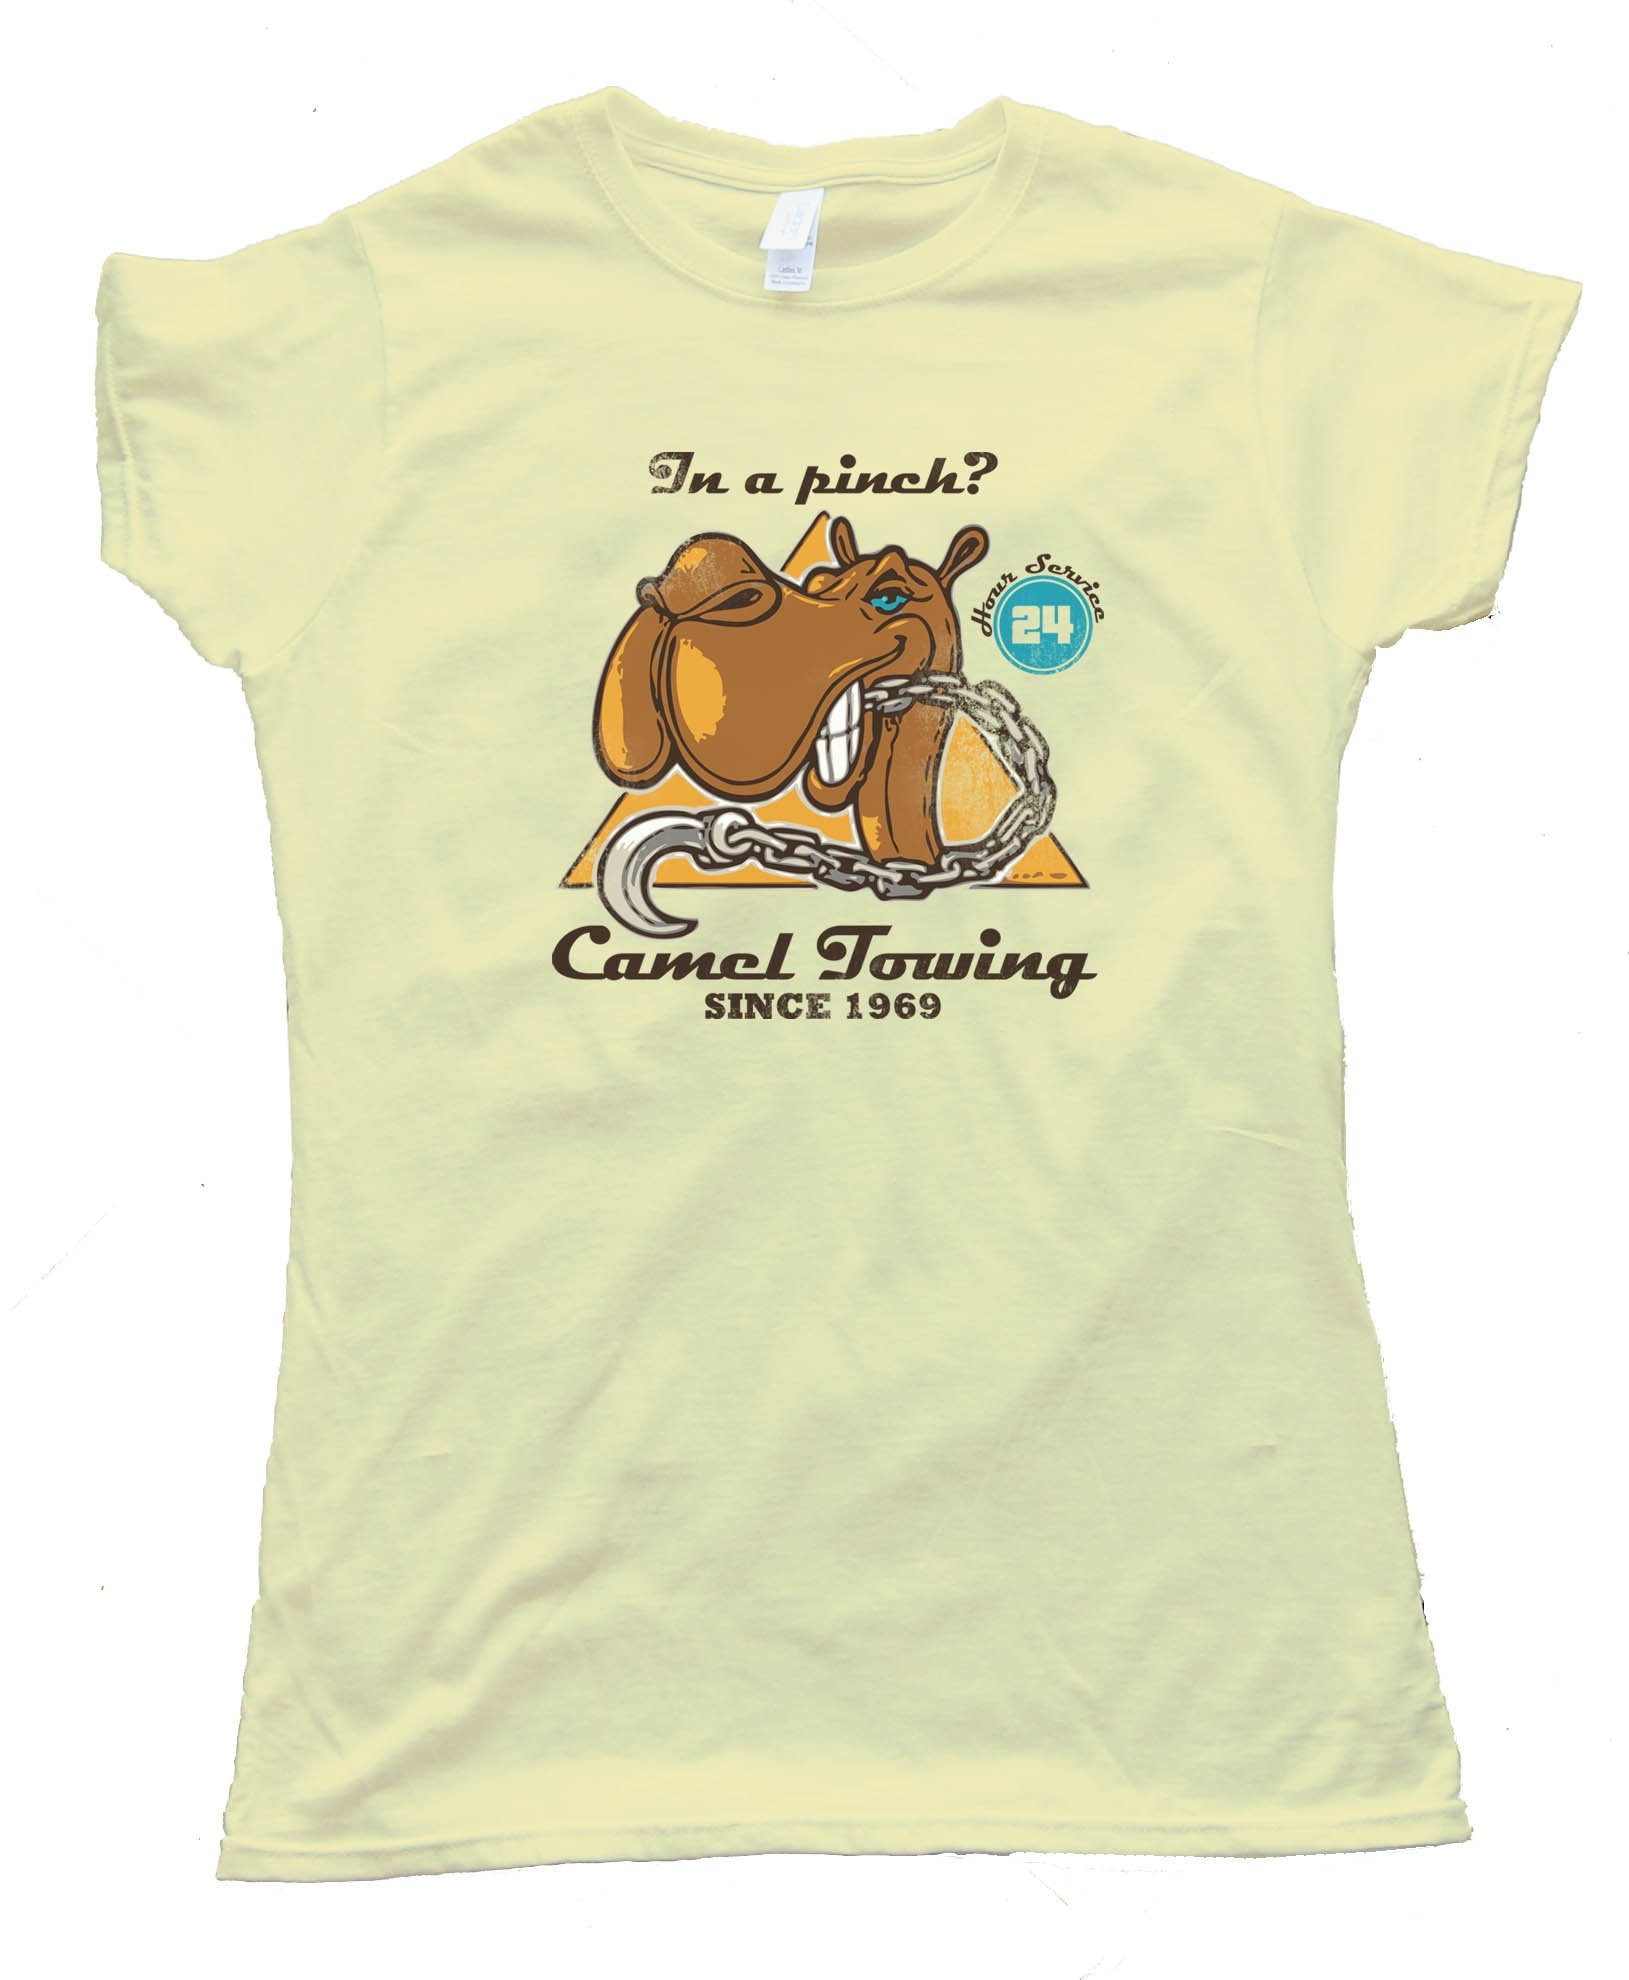 Womens Camel Towing Since 1969 - Camel Toe - Tee Shirt